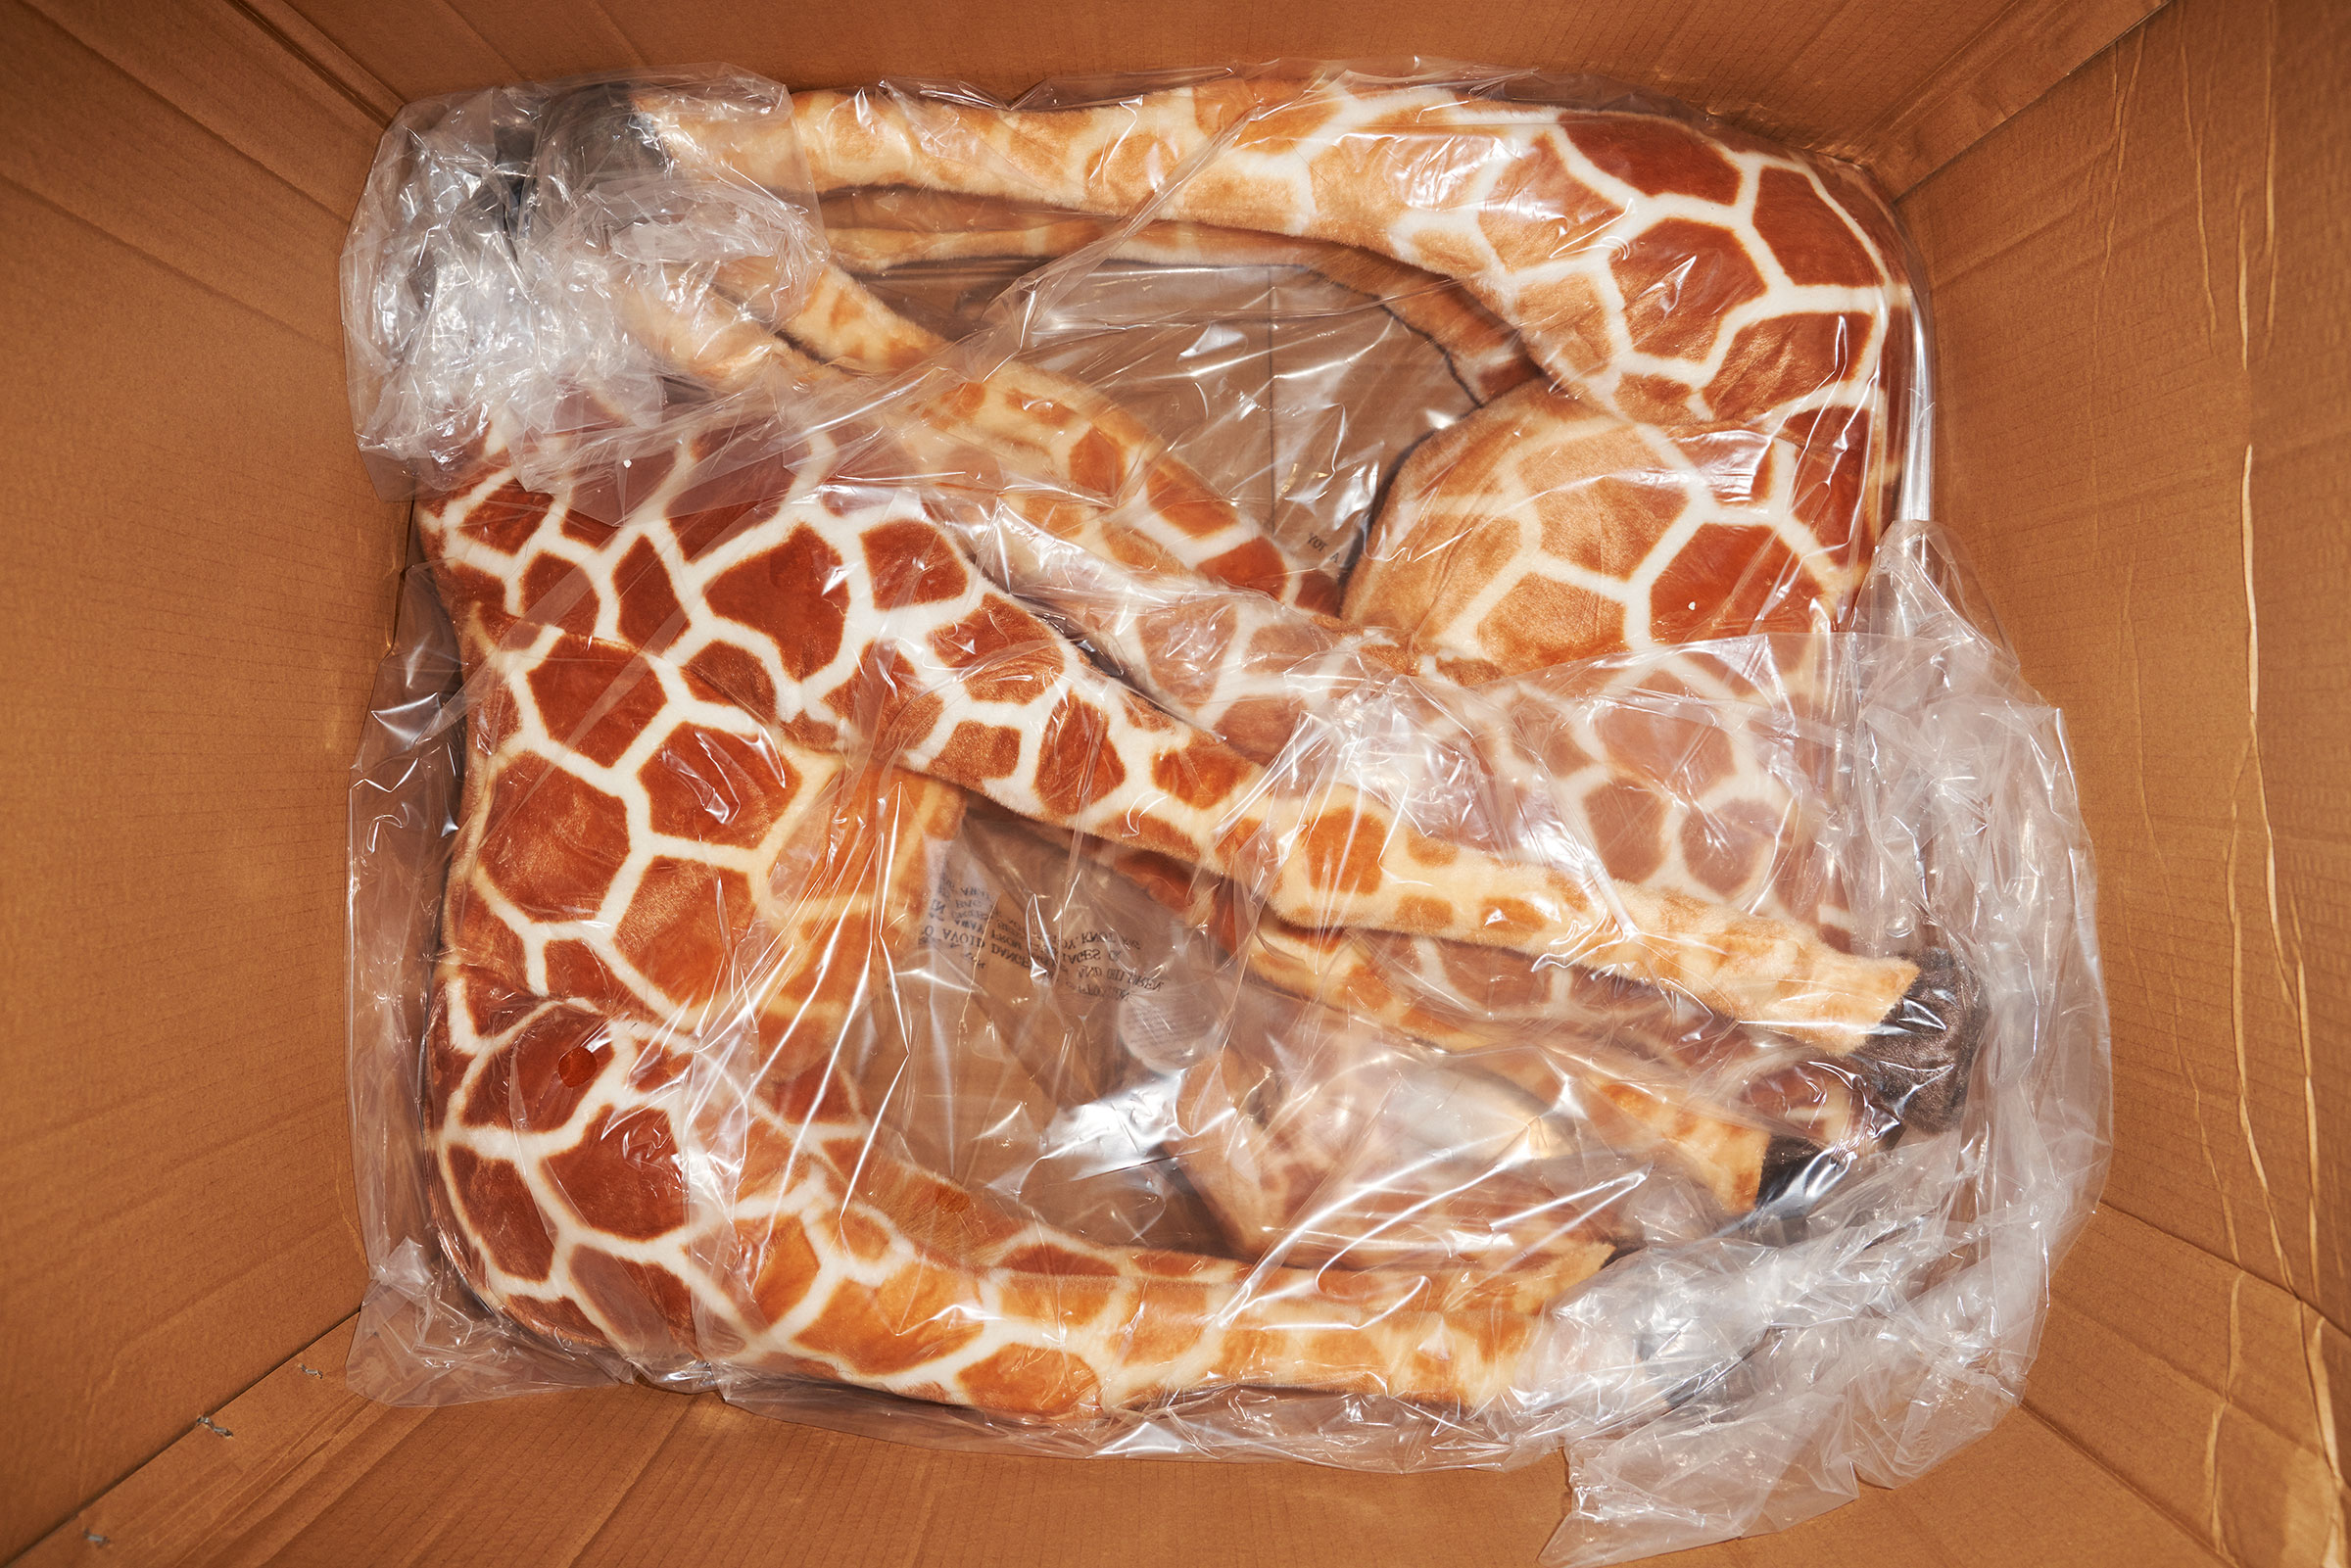 A shipment of toy giraffes at the Viahart distribution facility in Wills Point, Texas on  July 23, 2021.